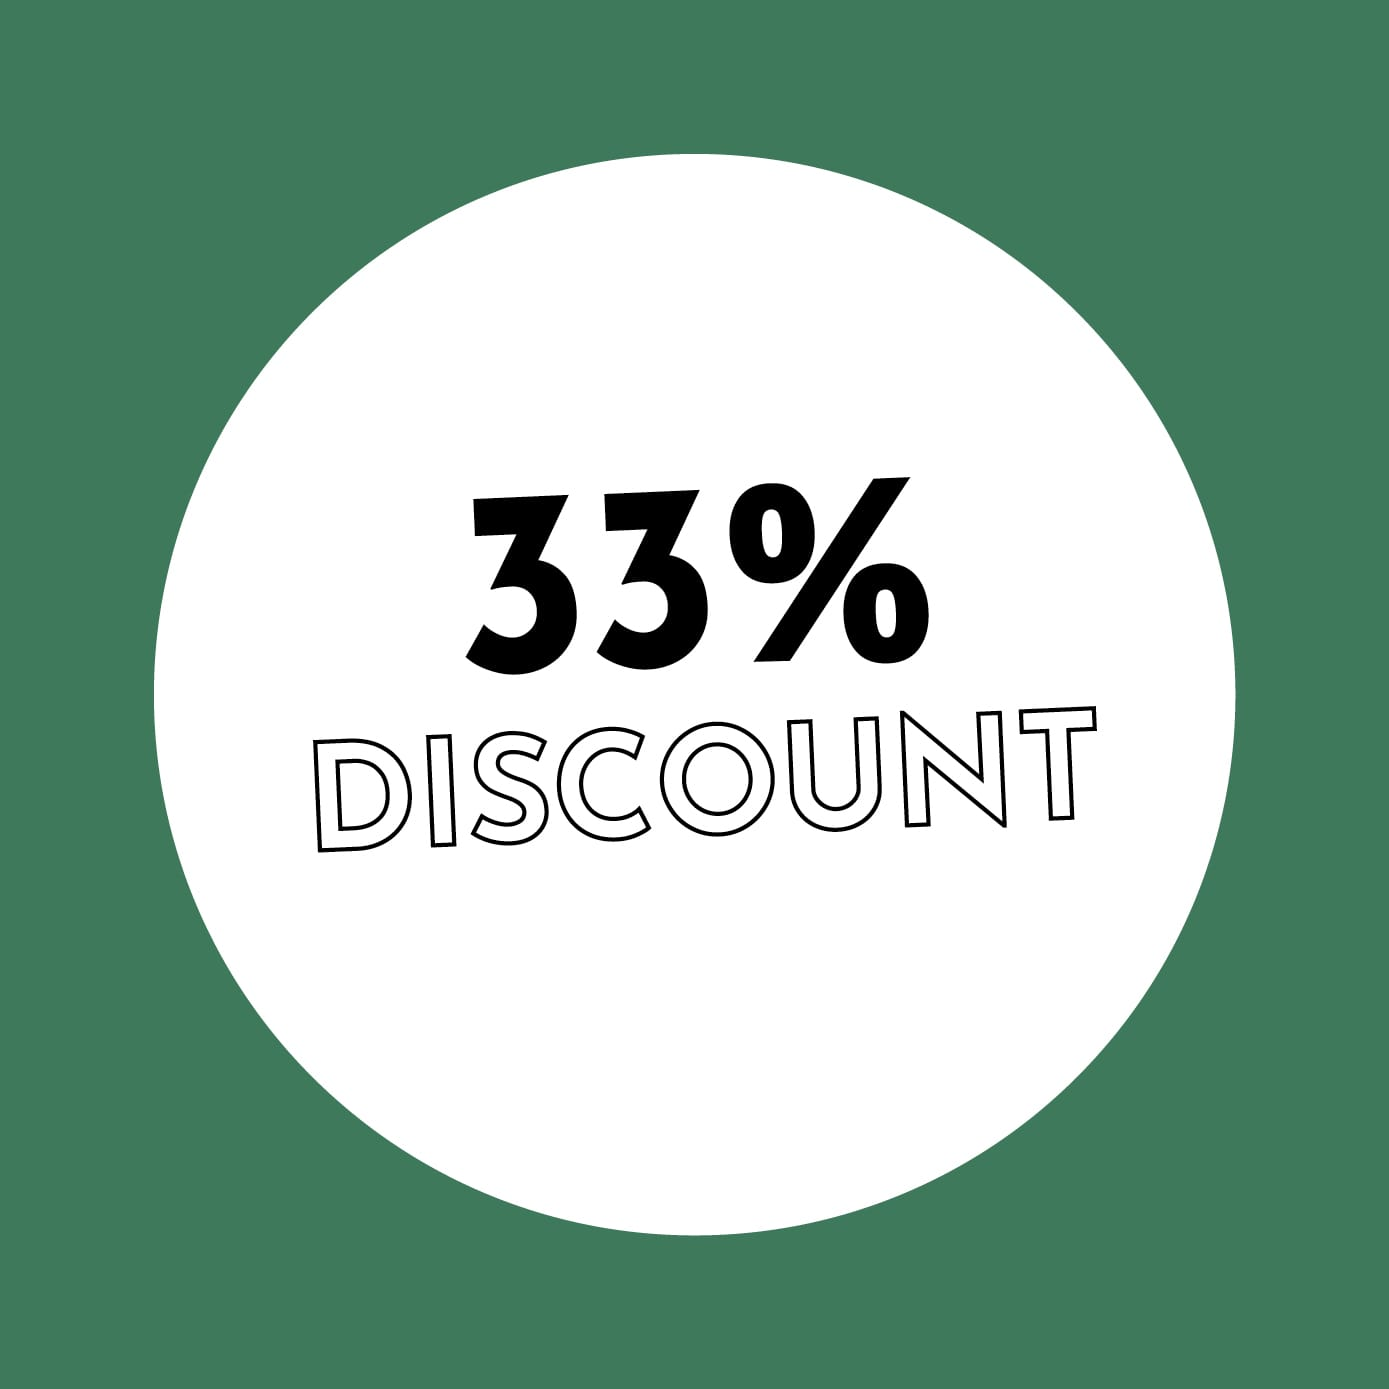 33% Discount